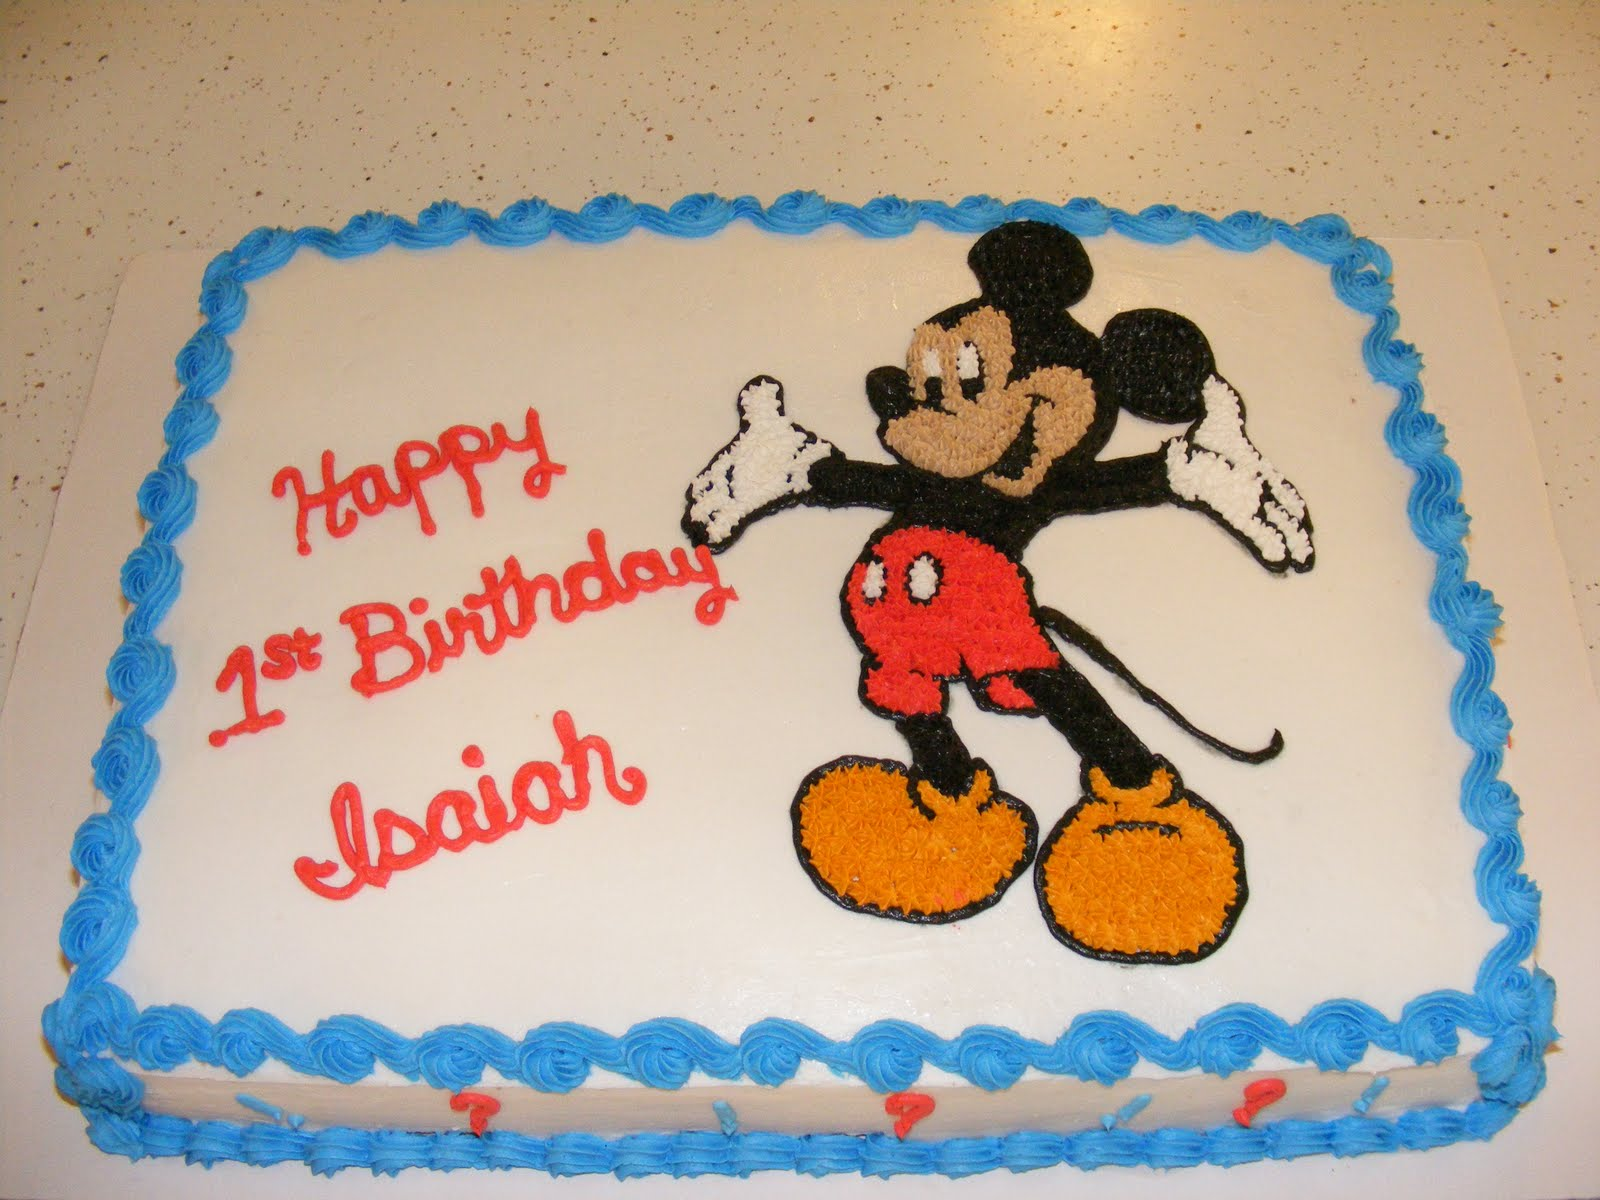 mickey mouse birthday sheet cake ; 2010_0403Feb20100001